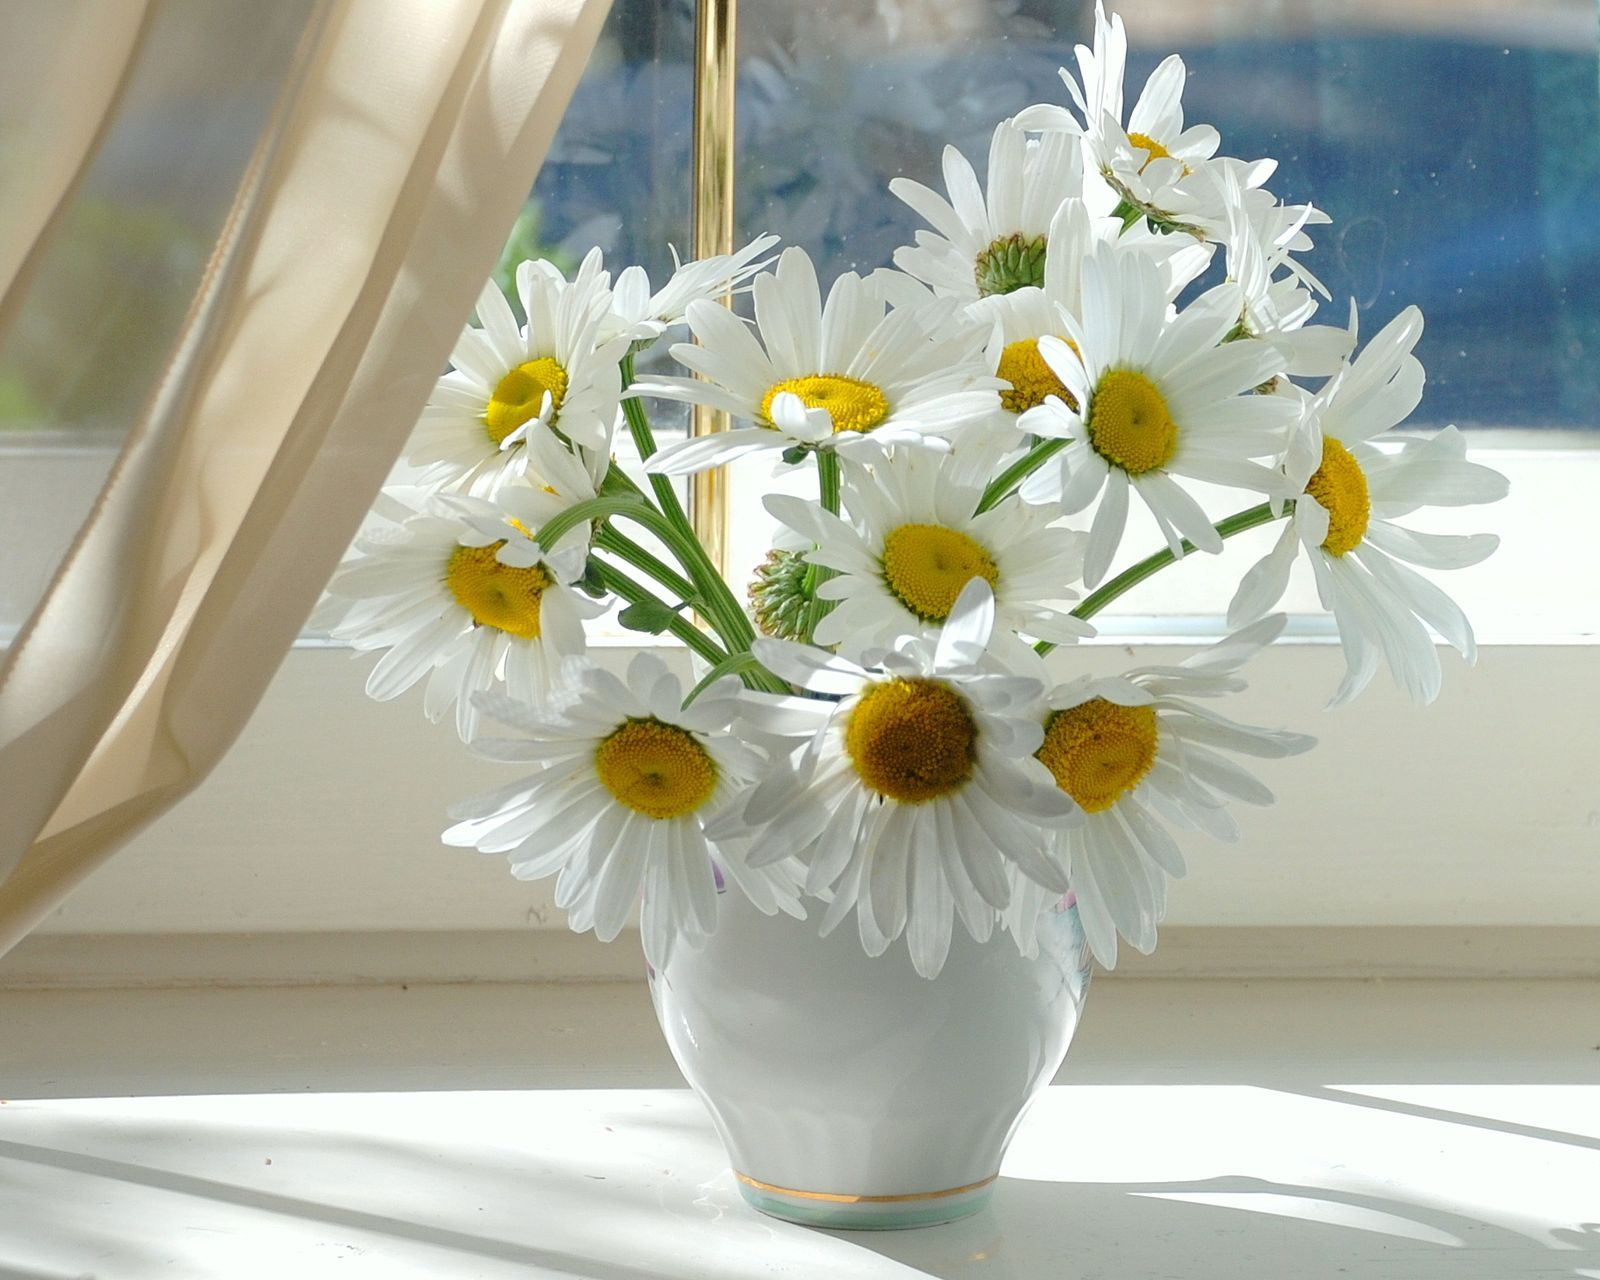 Download wallpaper daisies sill vase bouquet free desktop download wallpaper daisies sill vase bouquet free desktop wallpaper in the resolution 1600x1280 reviewsmspy